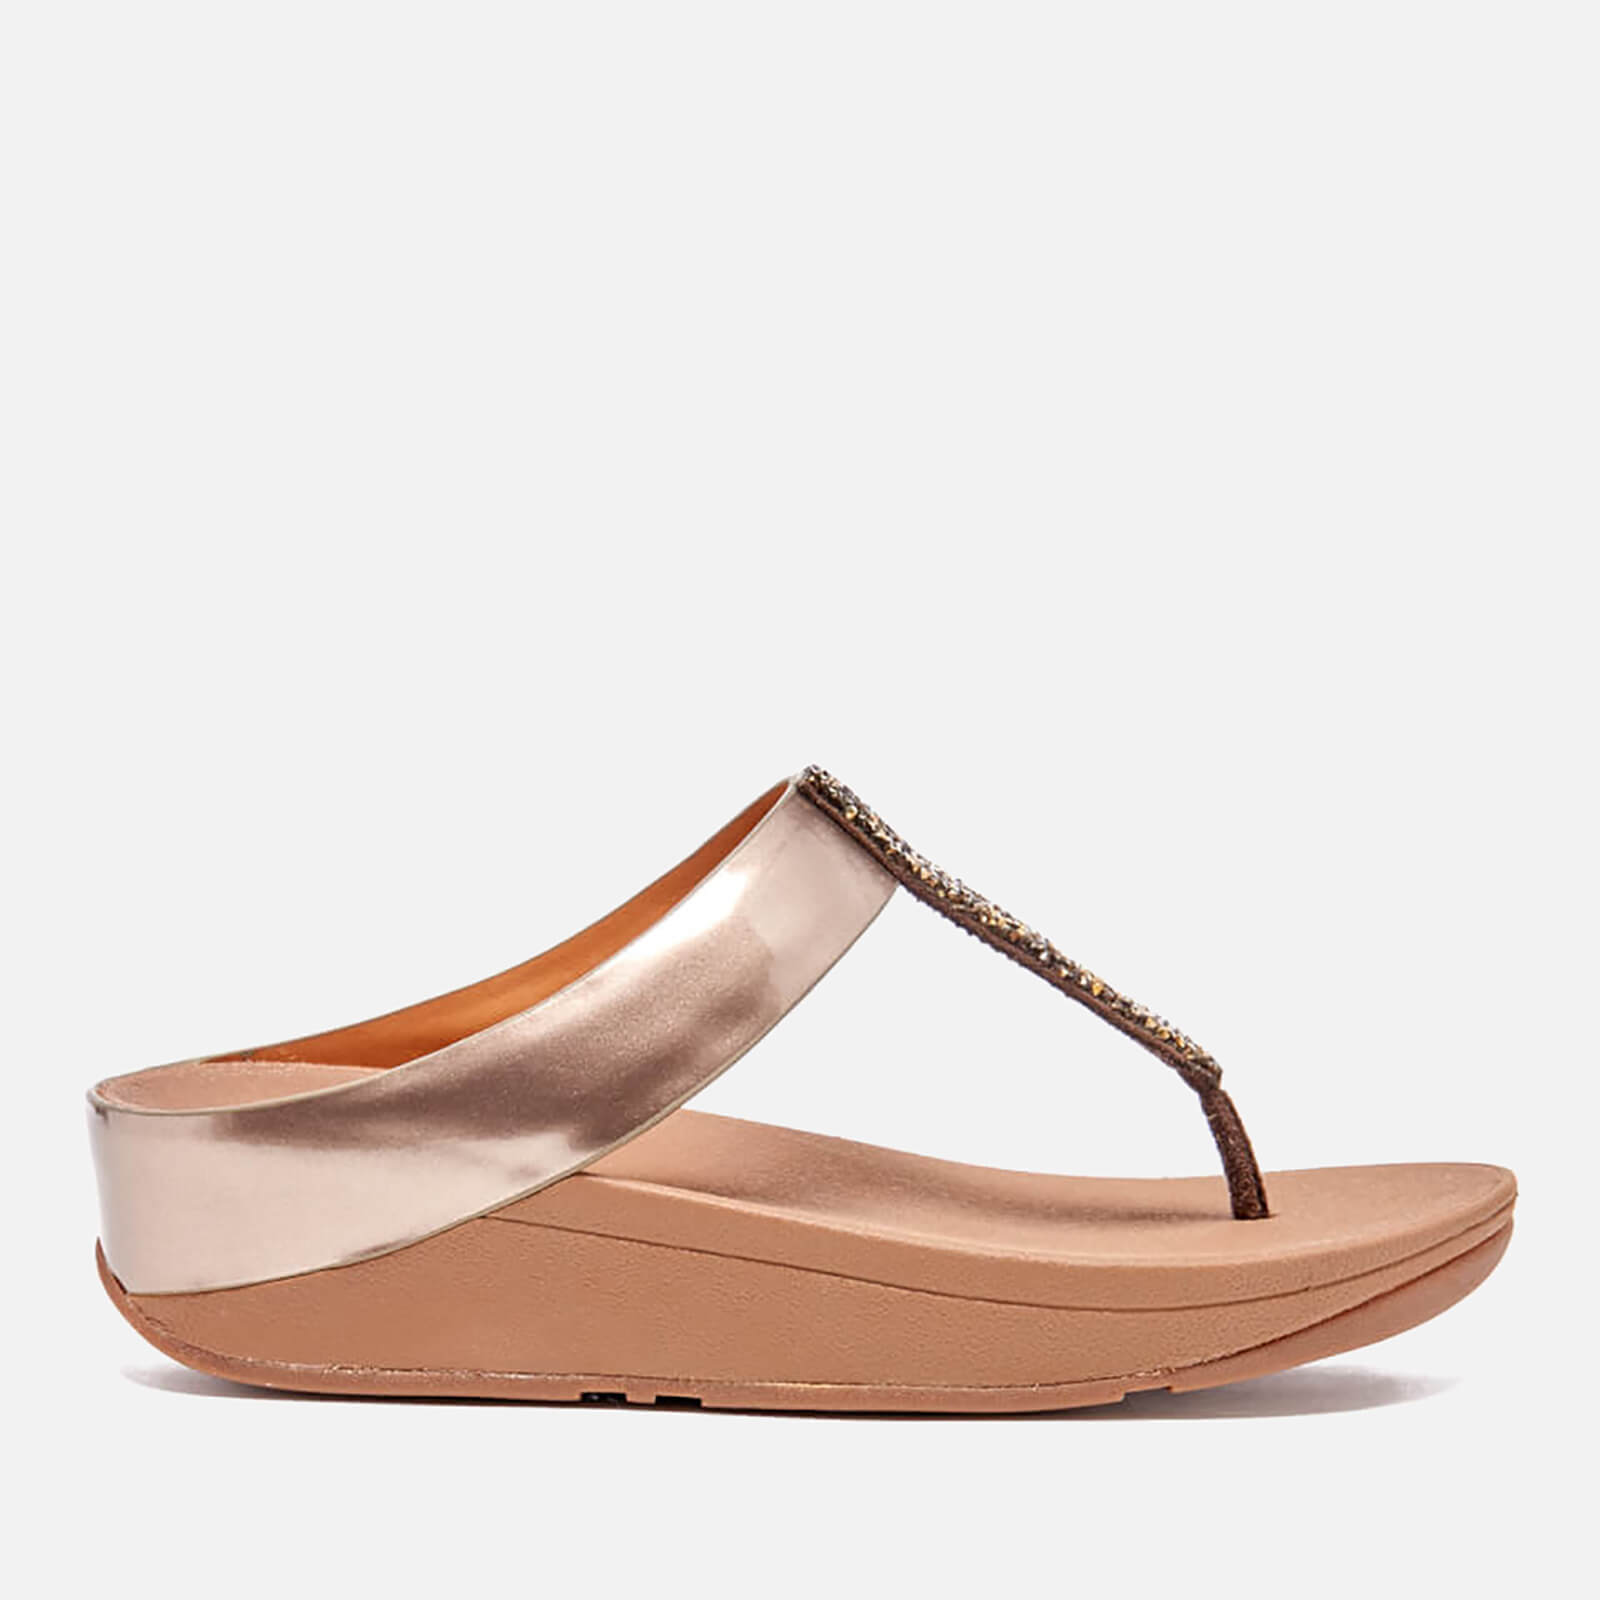 f54bbdc91 FitFlop Women s Fino Toe-Post Sandals - Bronze Womens Accessories ...